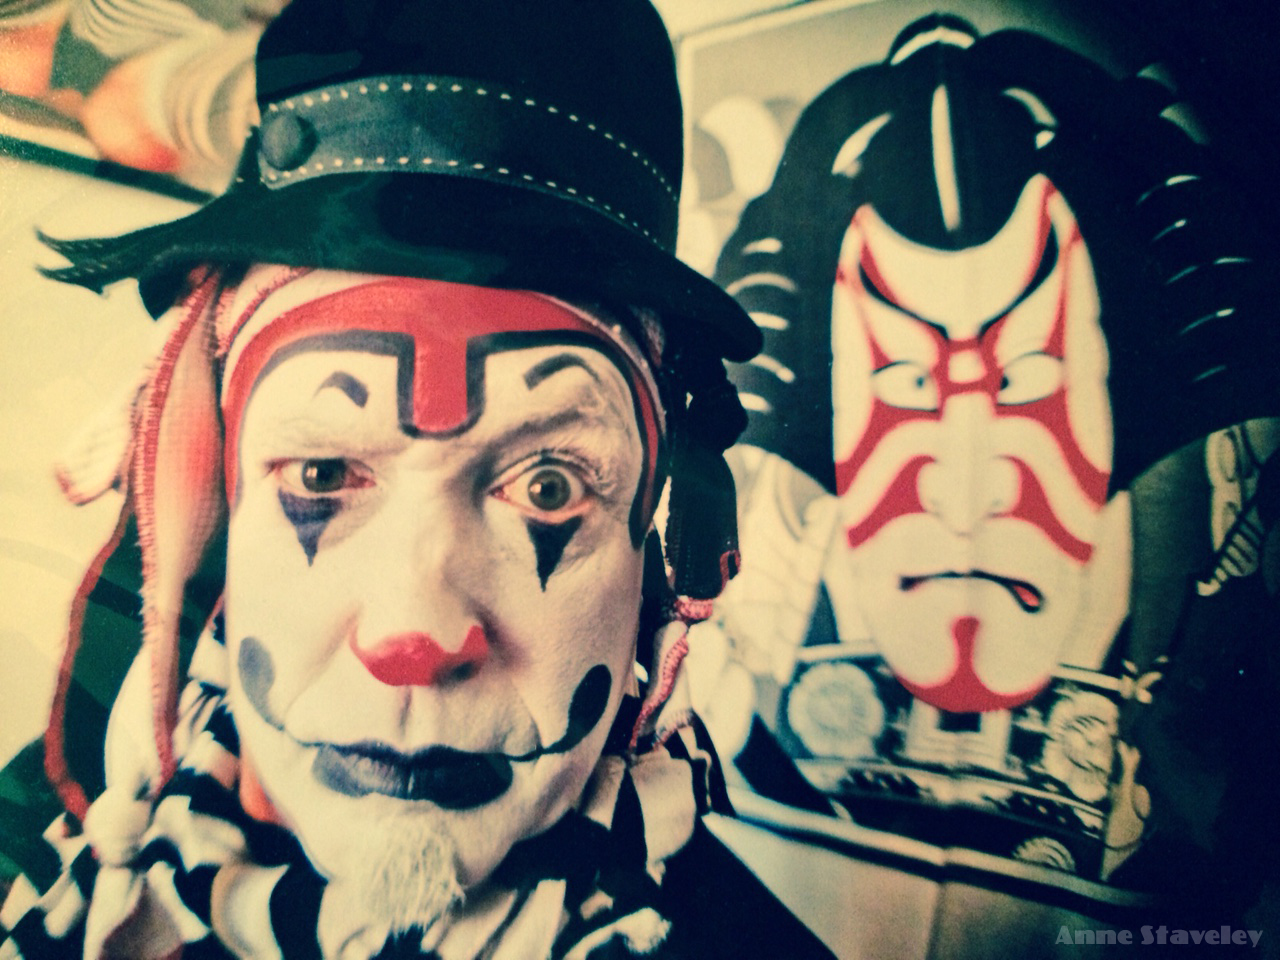 The Klown - Photo by Anne Staveley